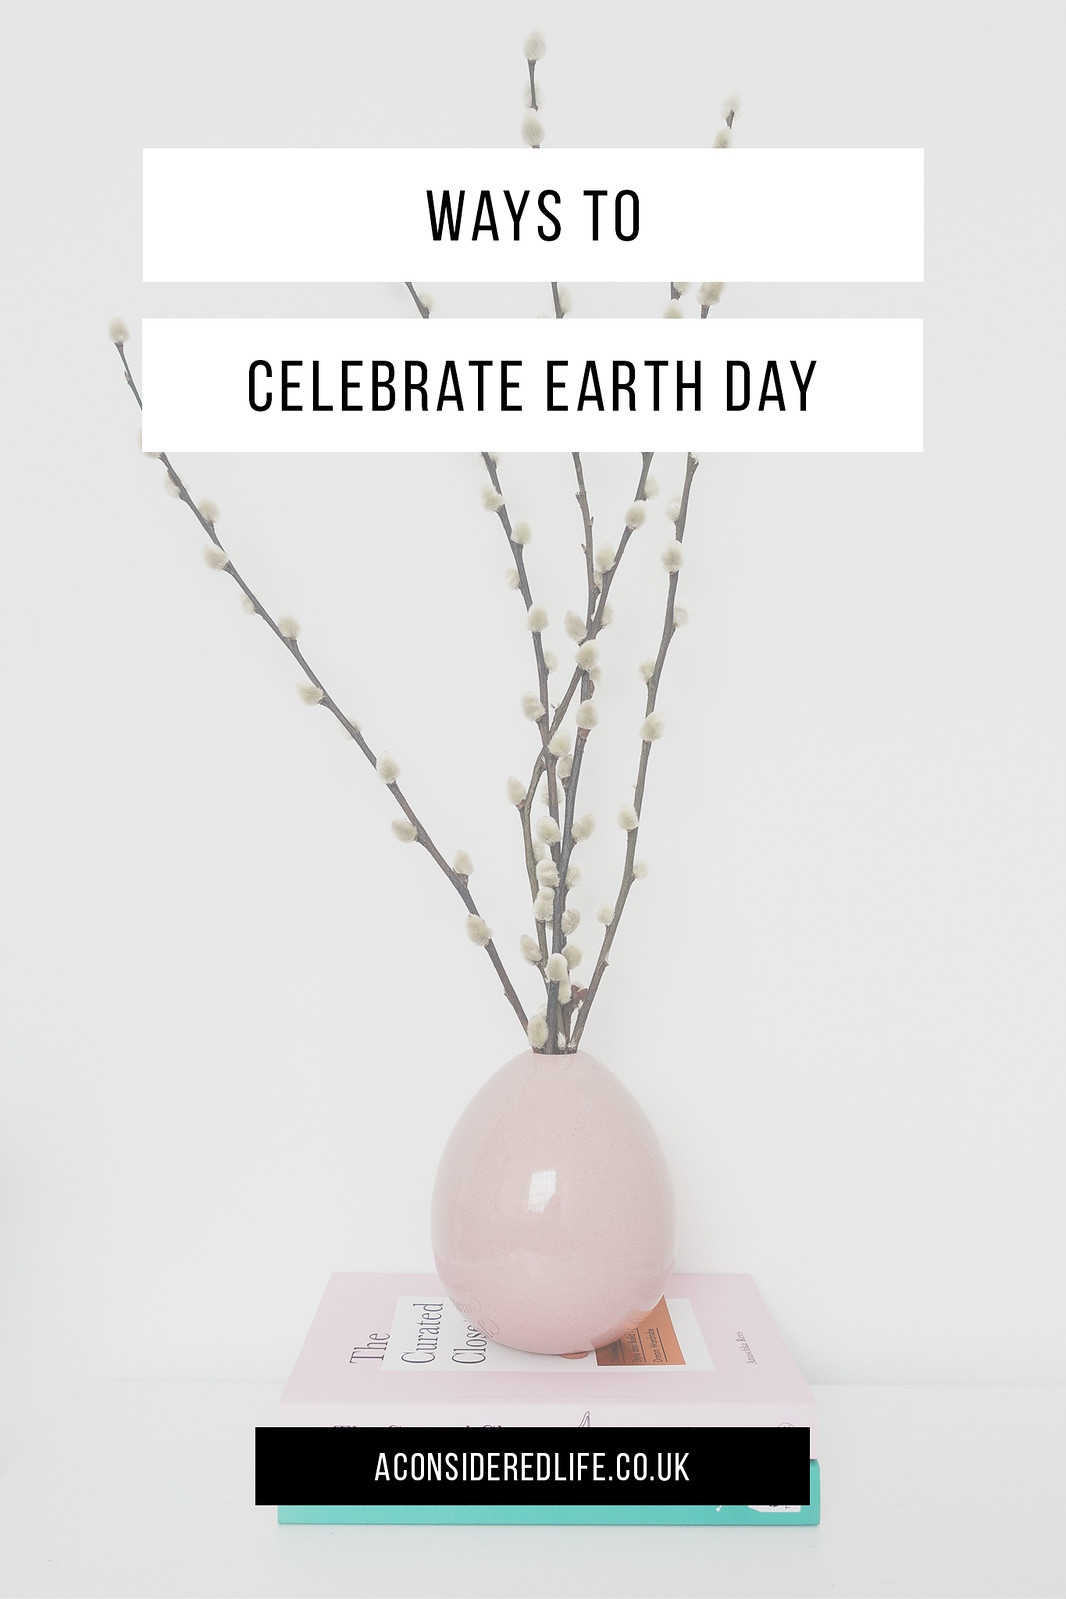 Sustainable Living Choices To Celebrate Earth Day